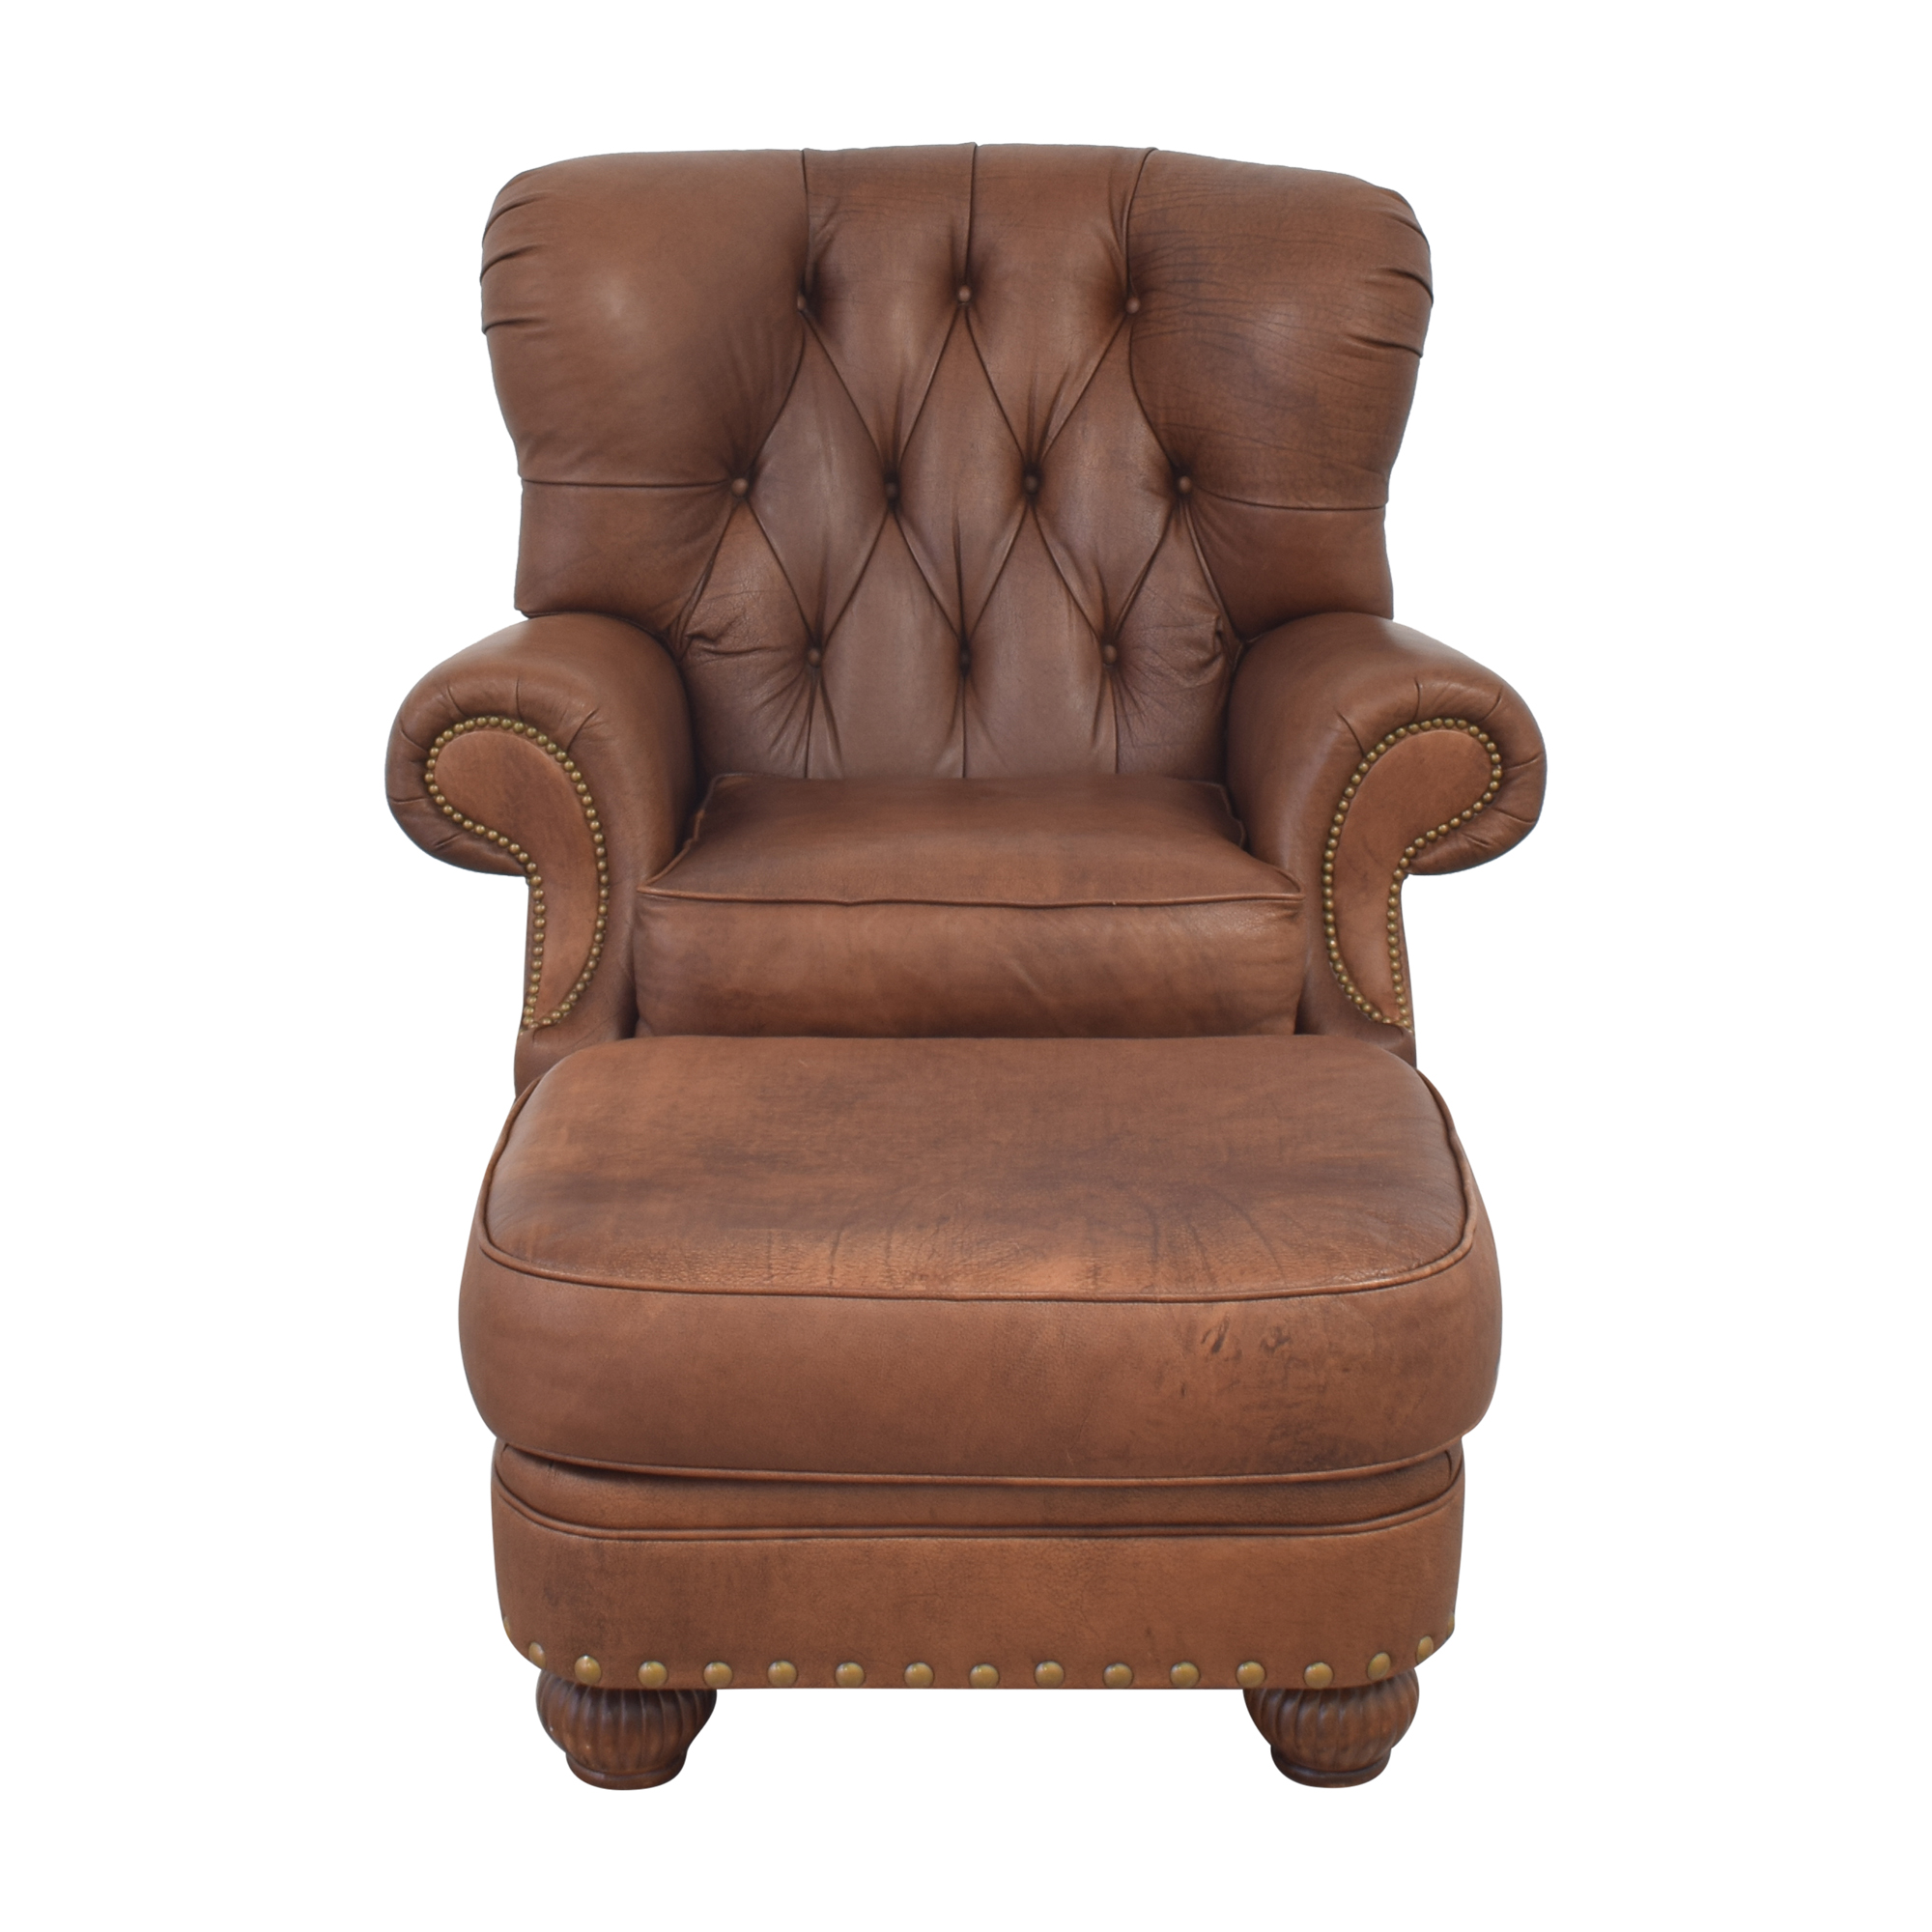 Leathercraft Leathercraft Tufted Recliner with Ottoman brown